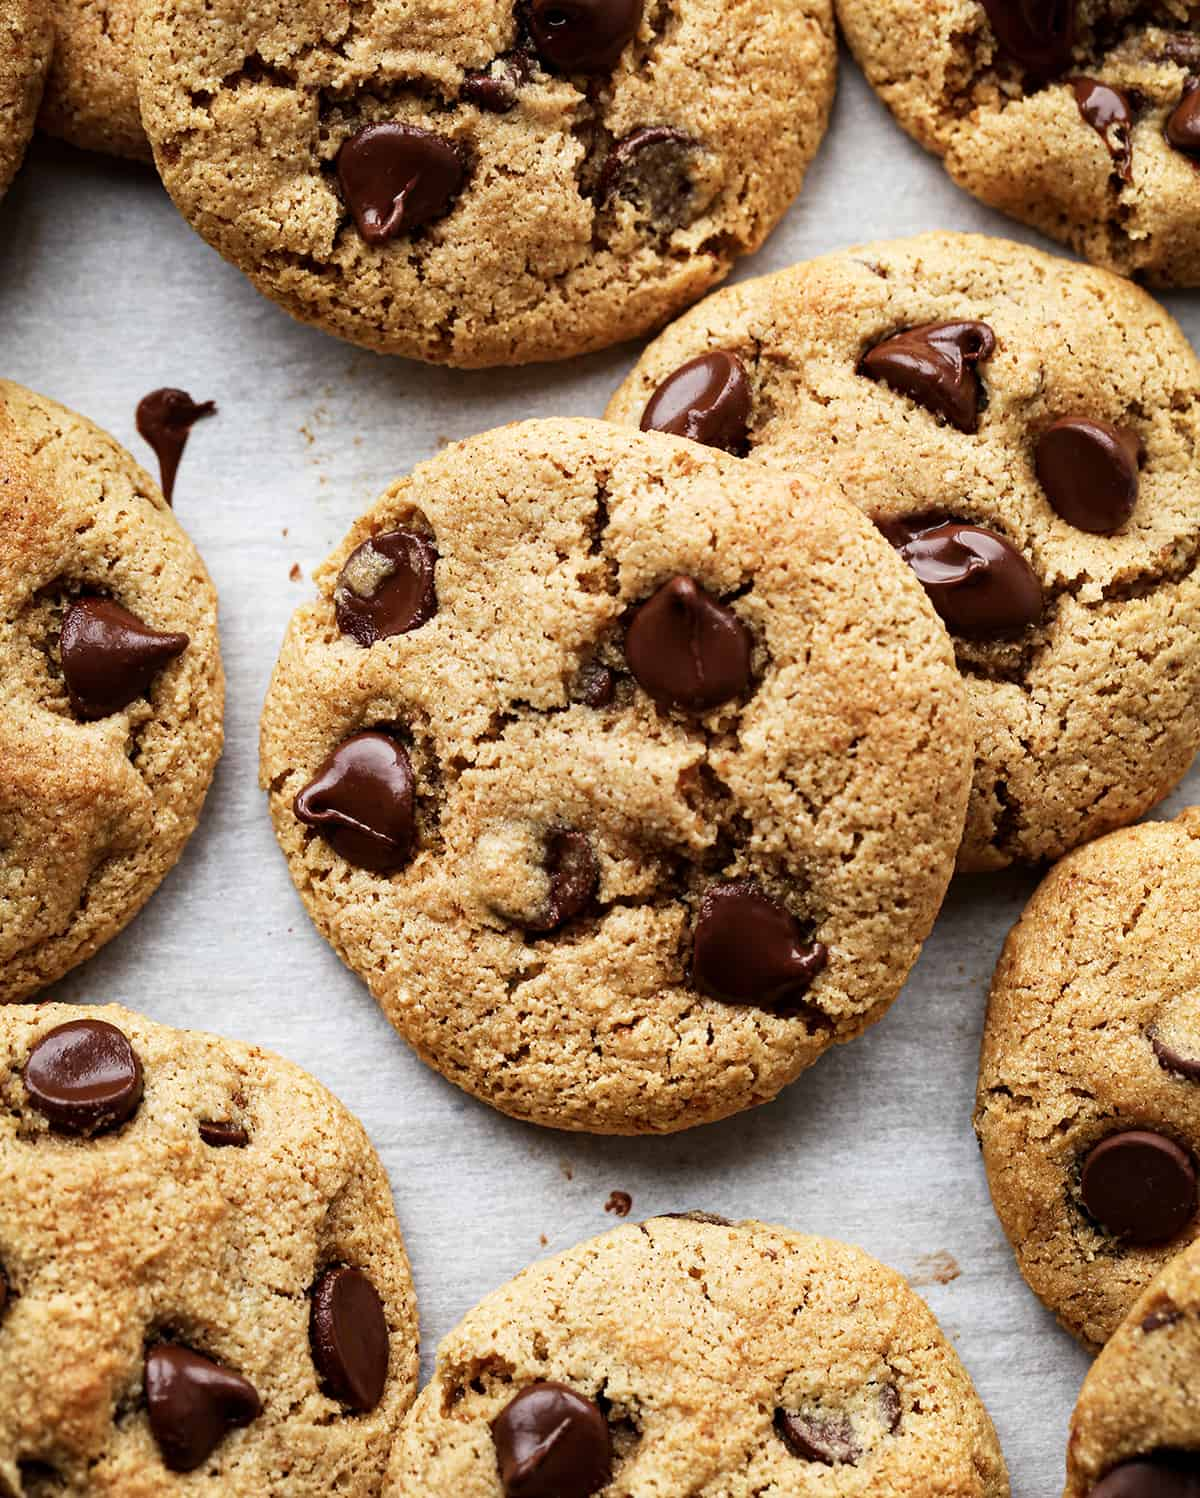 overhead view of 8 Paleo Chocolate Chip Cookies on a baking sheet